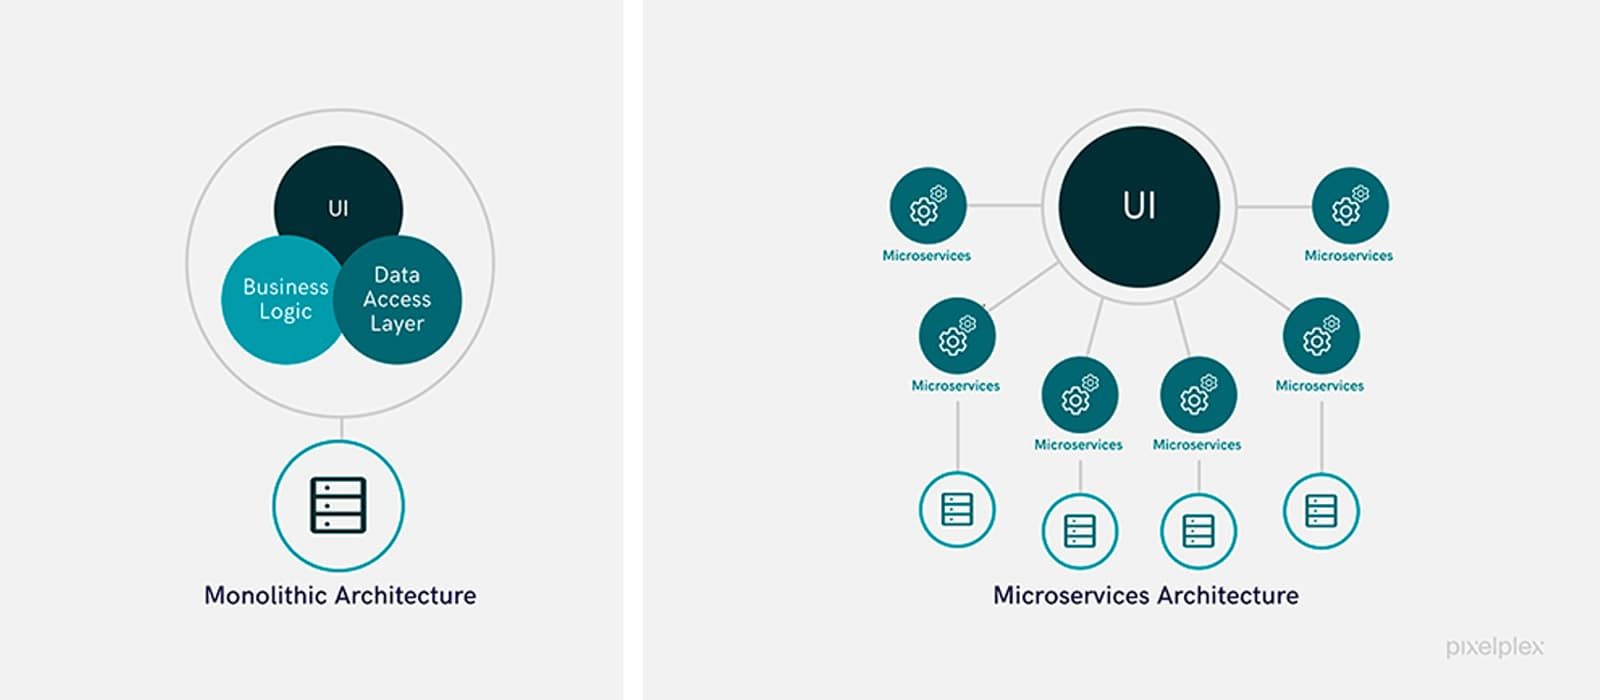 Comparison of monolithic and microservices architectures